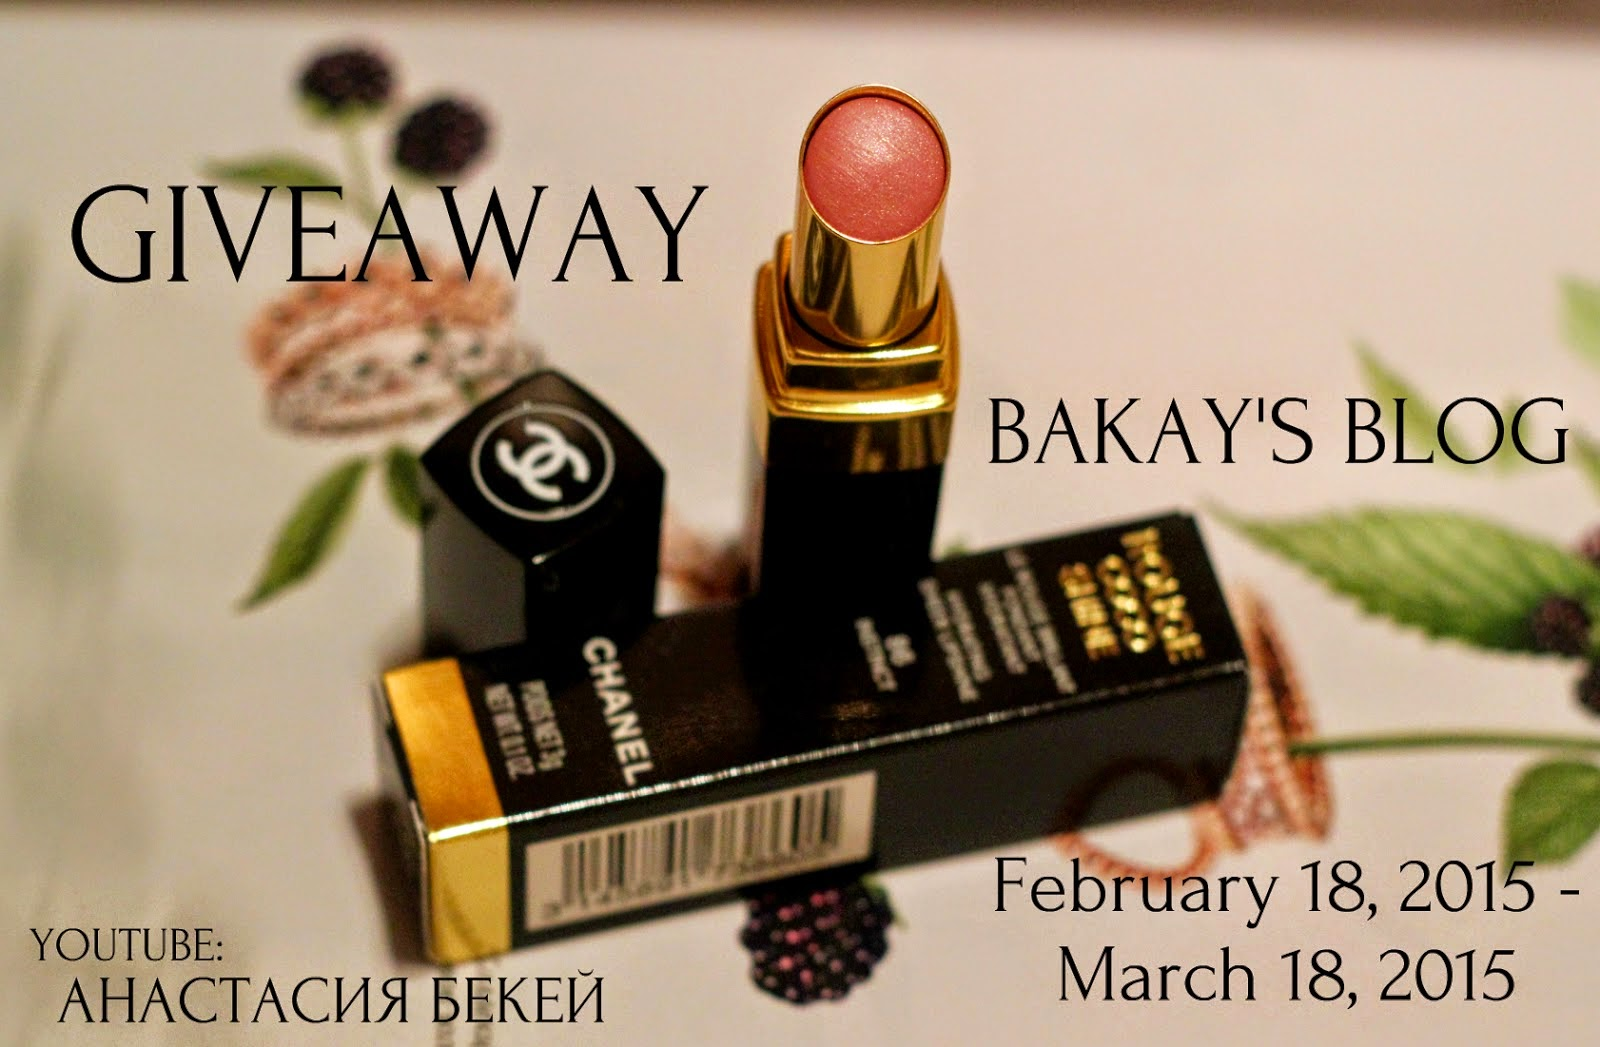 GIVEAWAY: LIPSTICK CHANEL ROUGE COCO 86